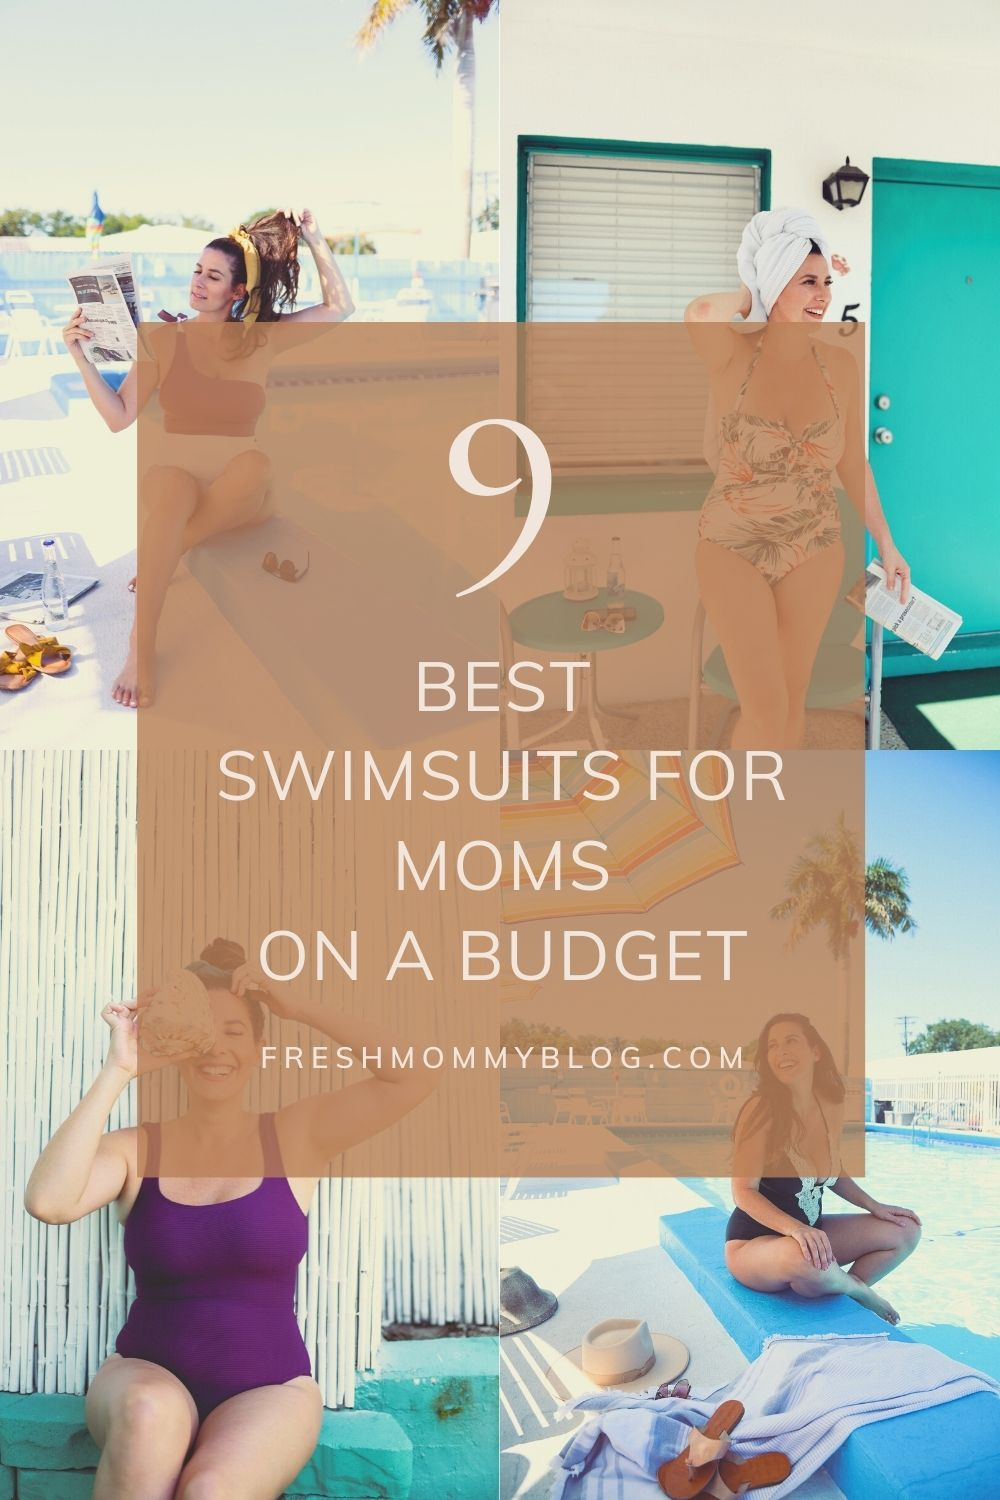 Swimsuits for Moms by popular Florida fashion blog, Fresh Mommy Blog: Pinterest image of a woman wearing various one piece swimsuits.